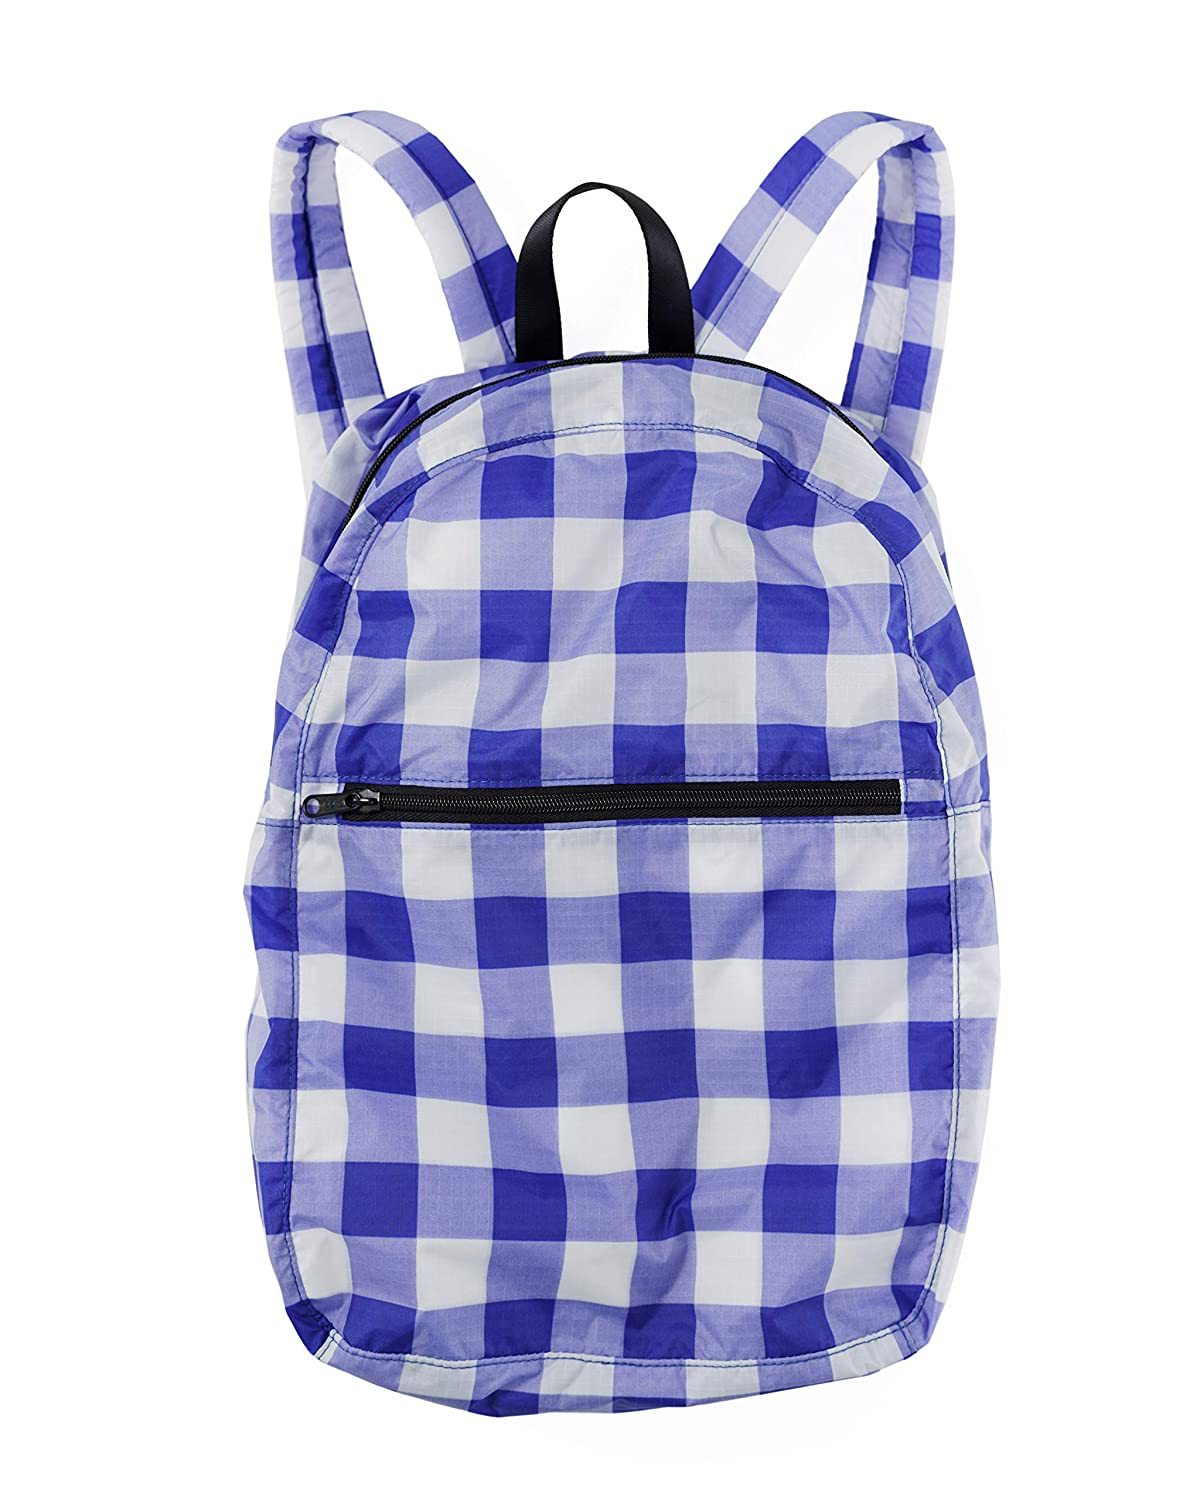 431074e69564 Ripstop Nylon Backpack, Lightweight Packable Backpack Ideal for Travel or  the Gym, Big Check Blue